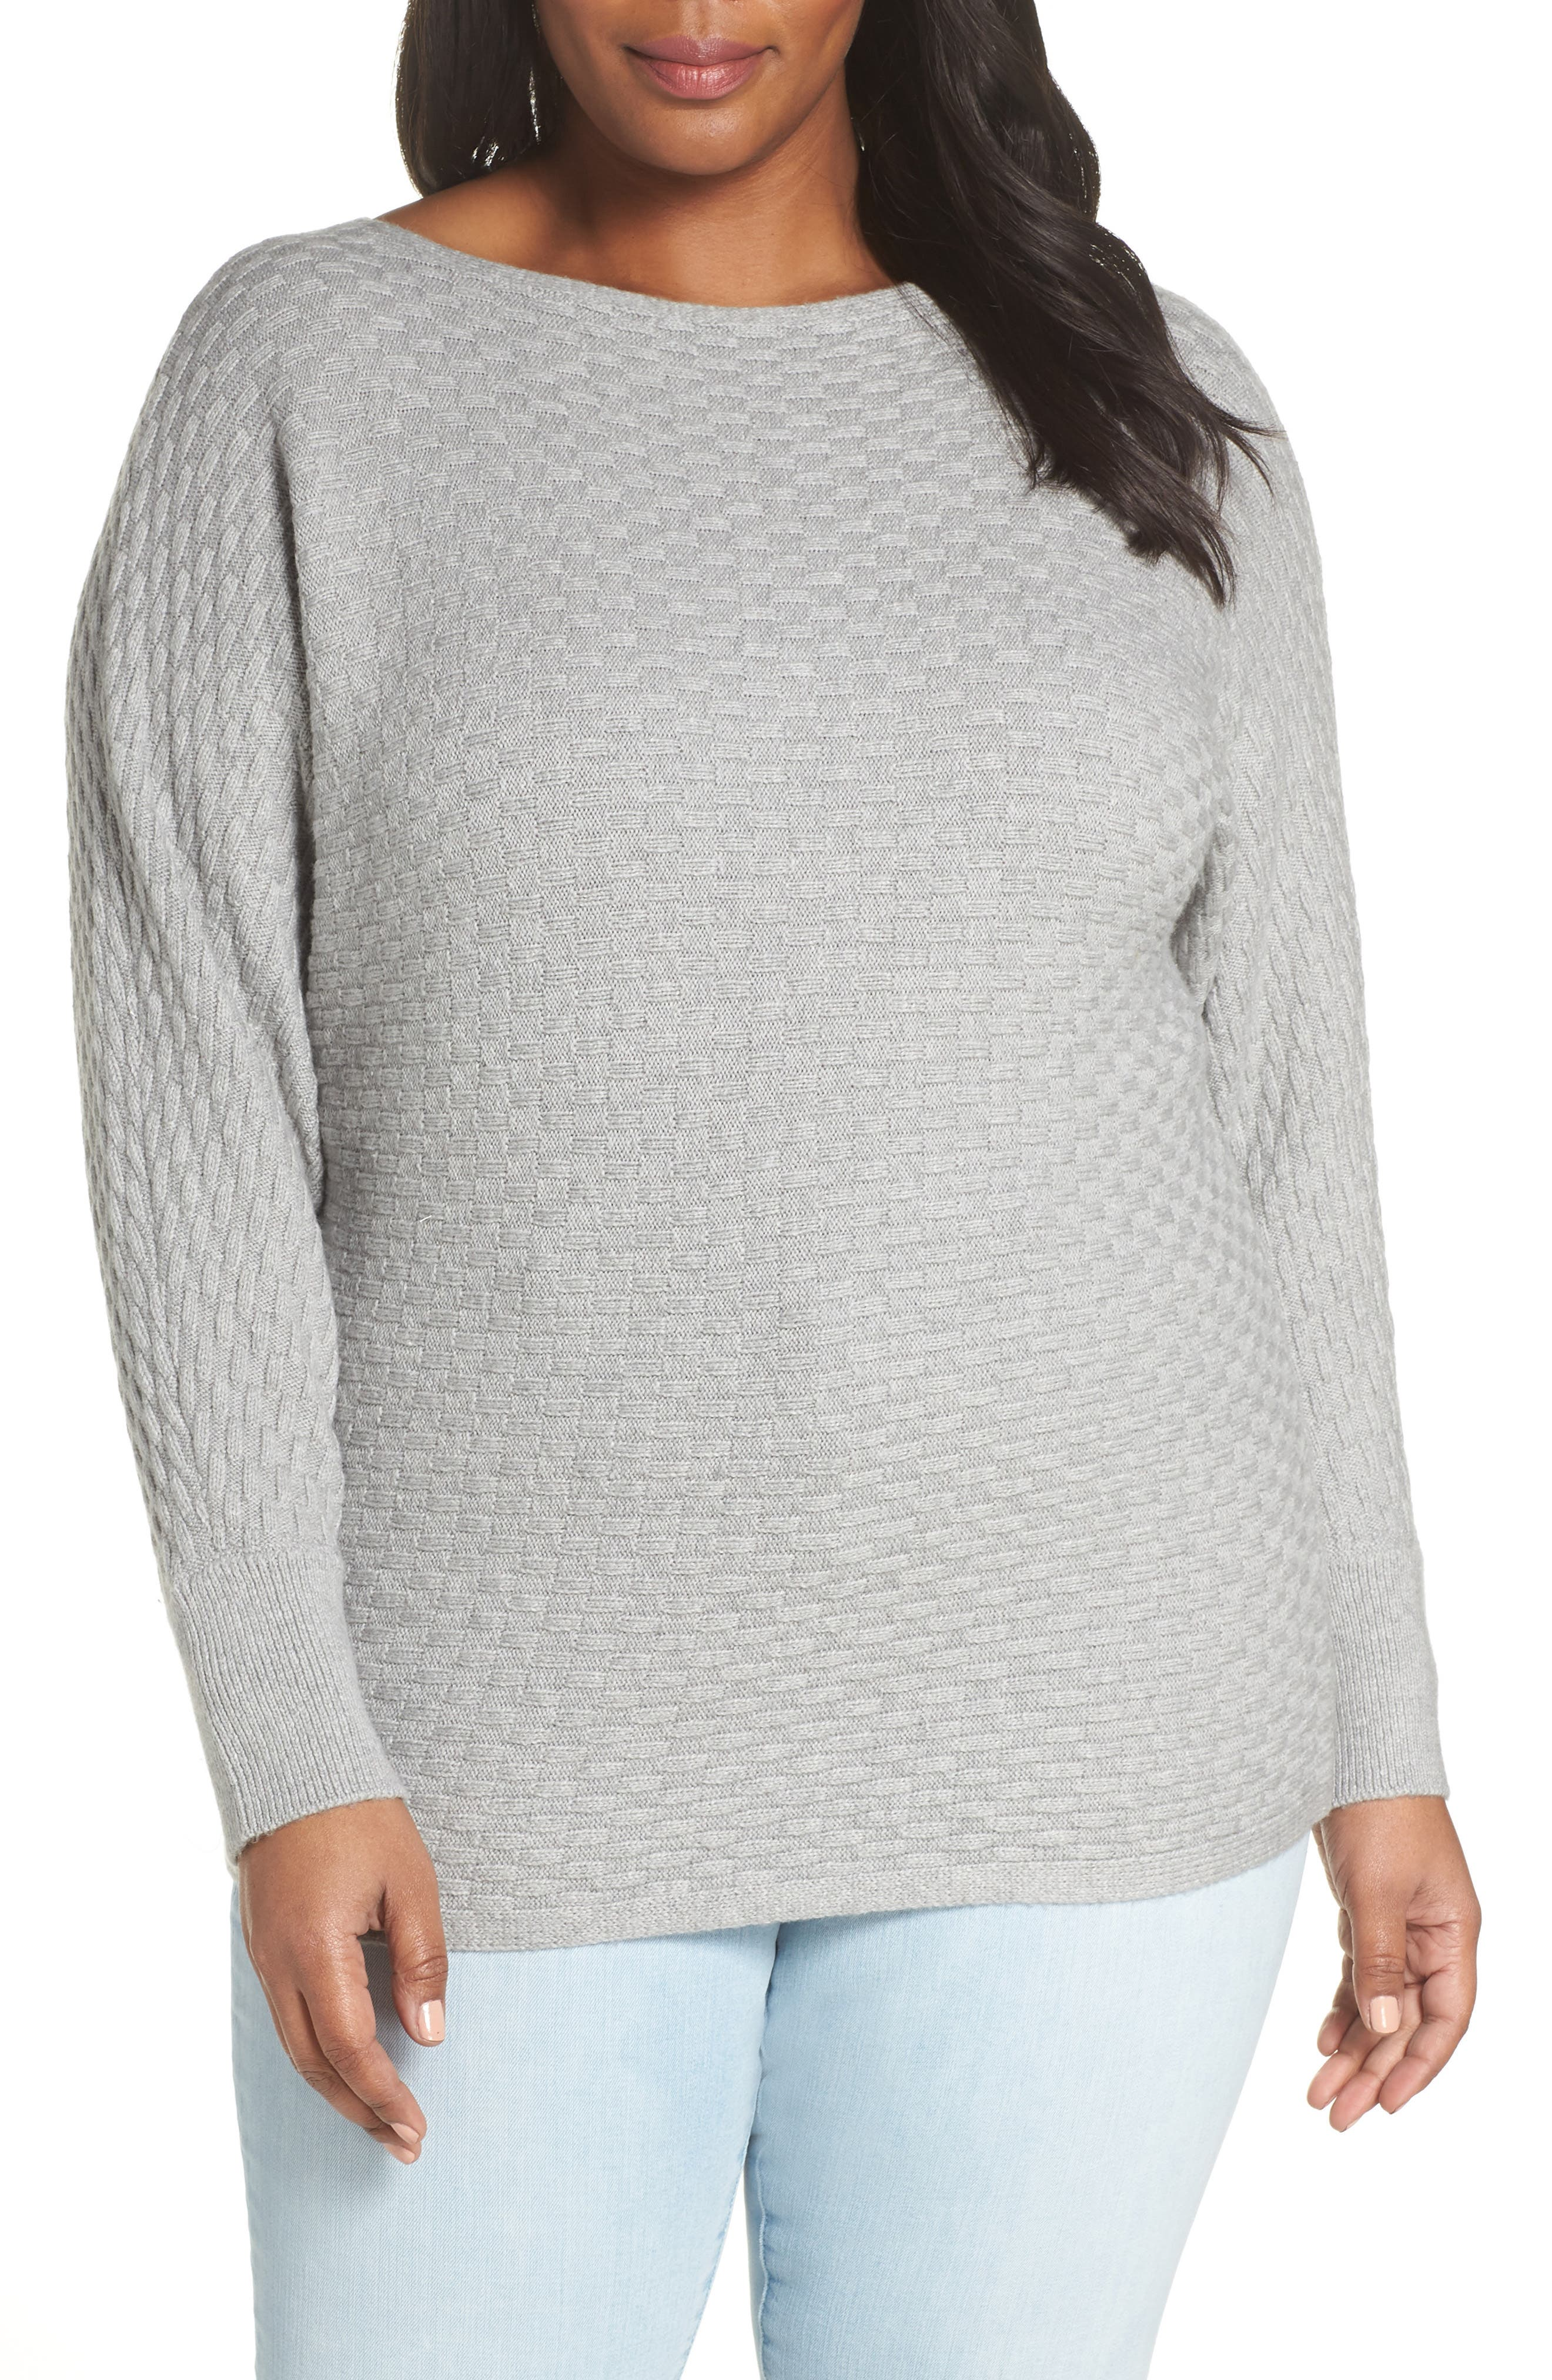 Boatneck Sweater,                             Main thumbnail 1, color,                             LIGHT HEATHER GREY